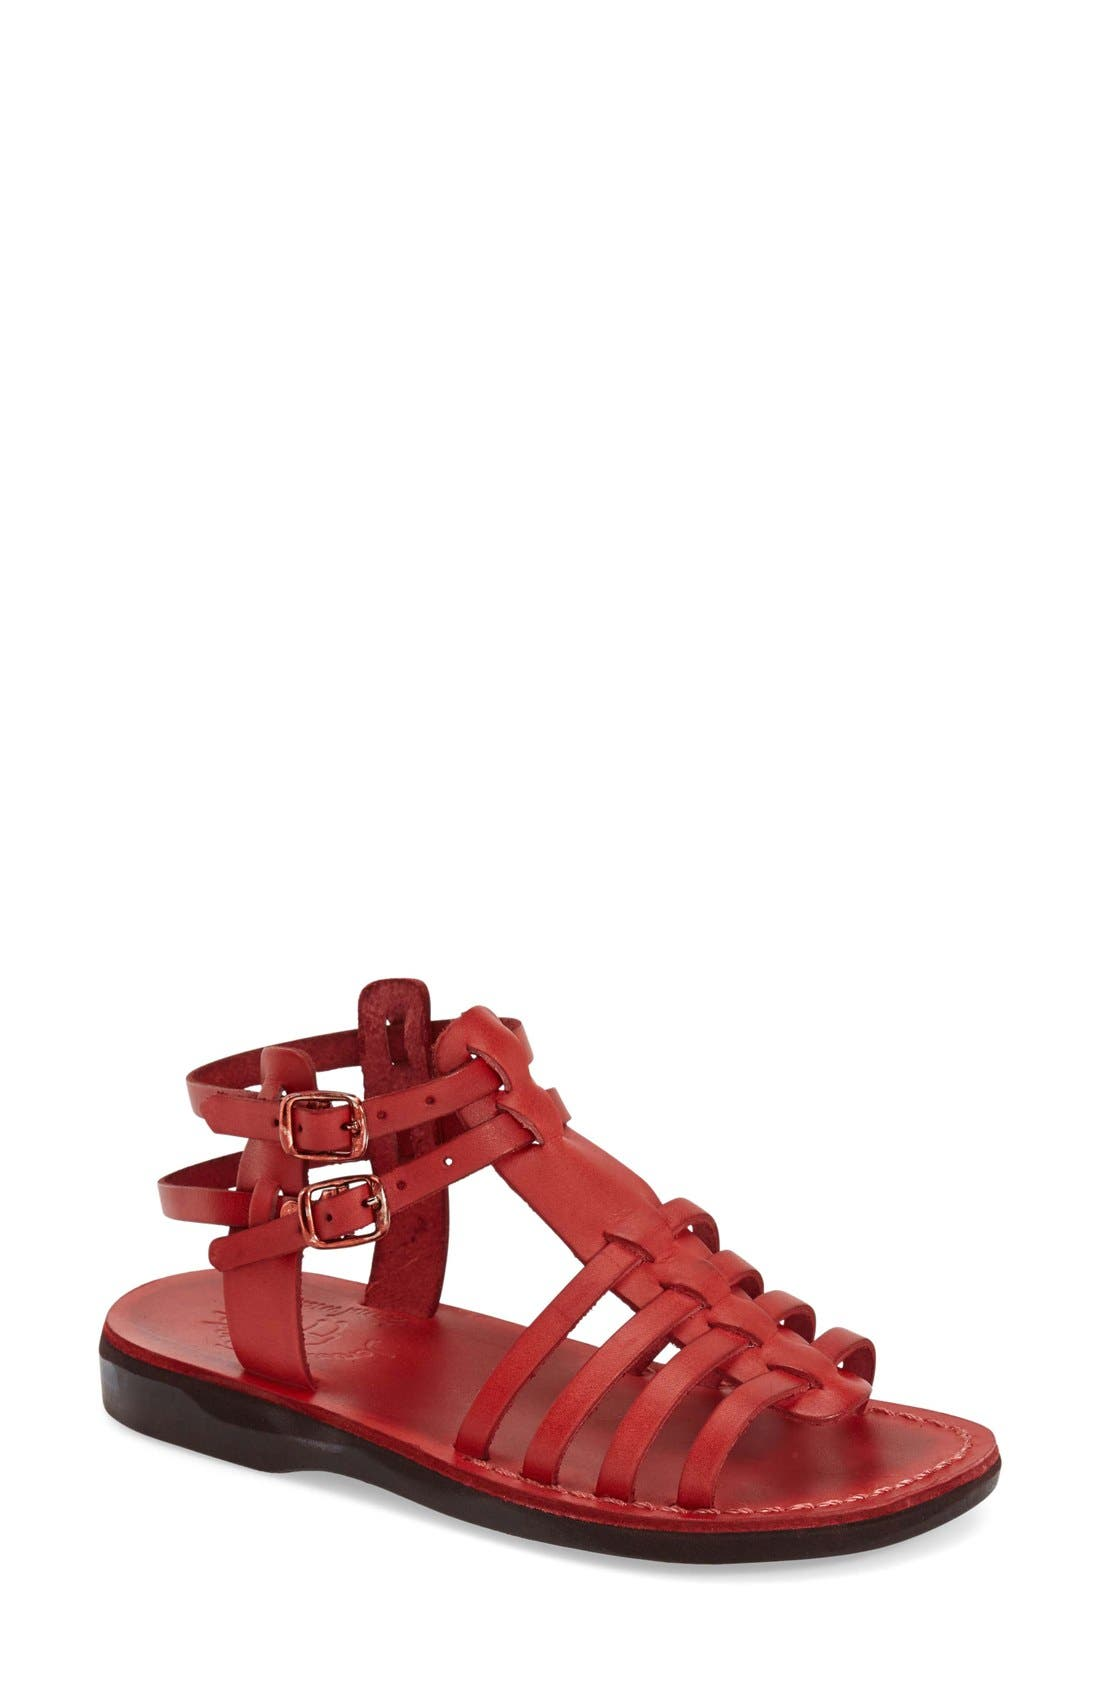 'Leah' Sandal,                             Main thumbnail 1, color,                             Red Leather